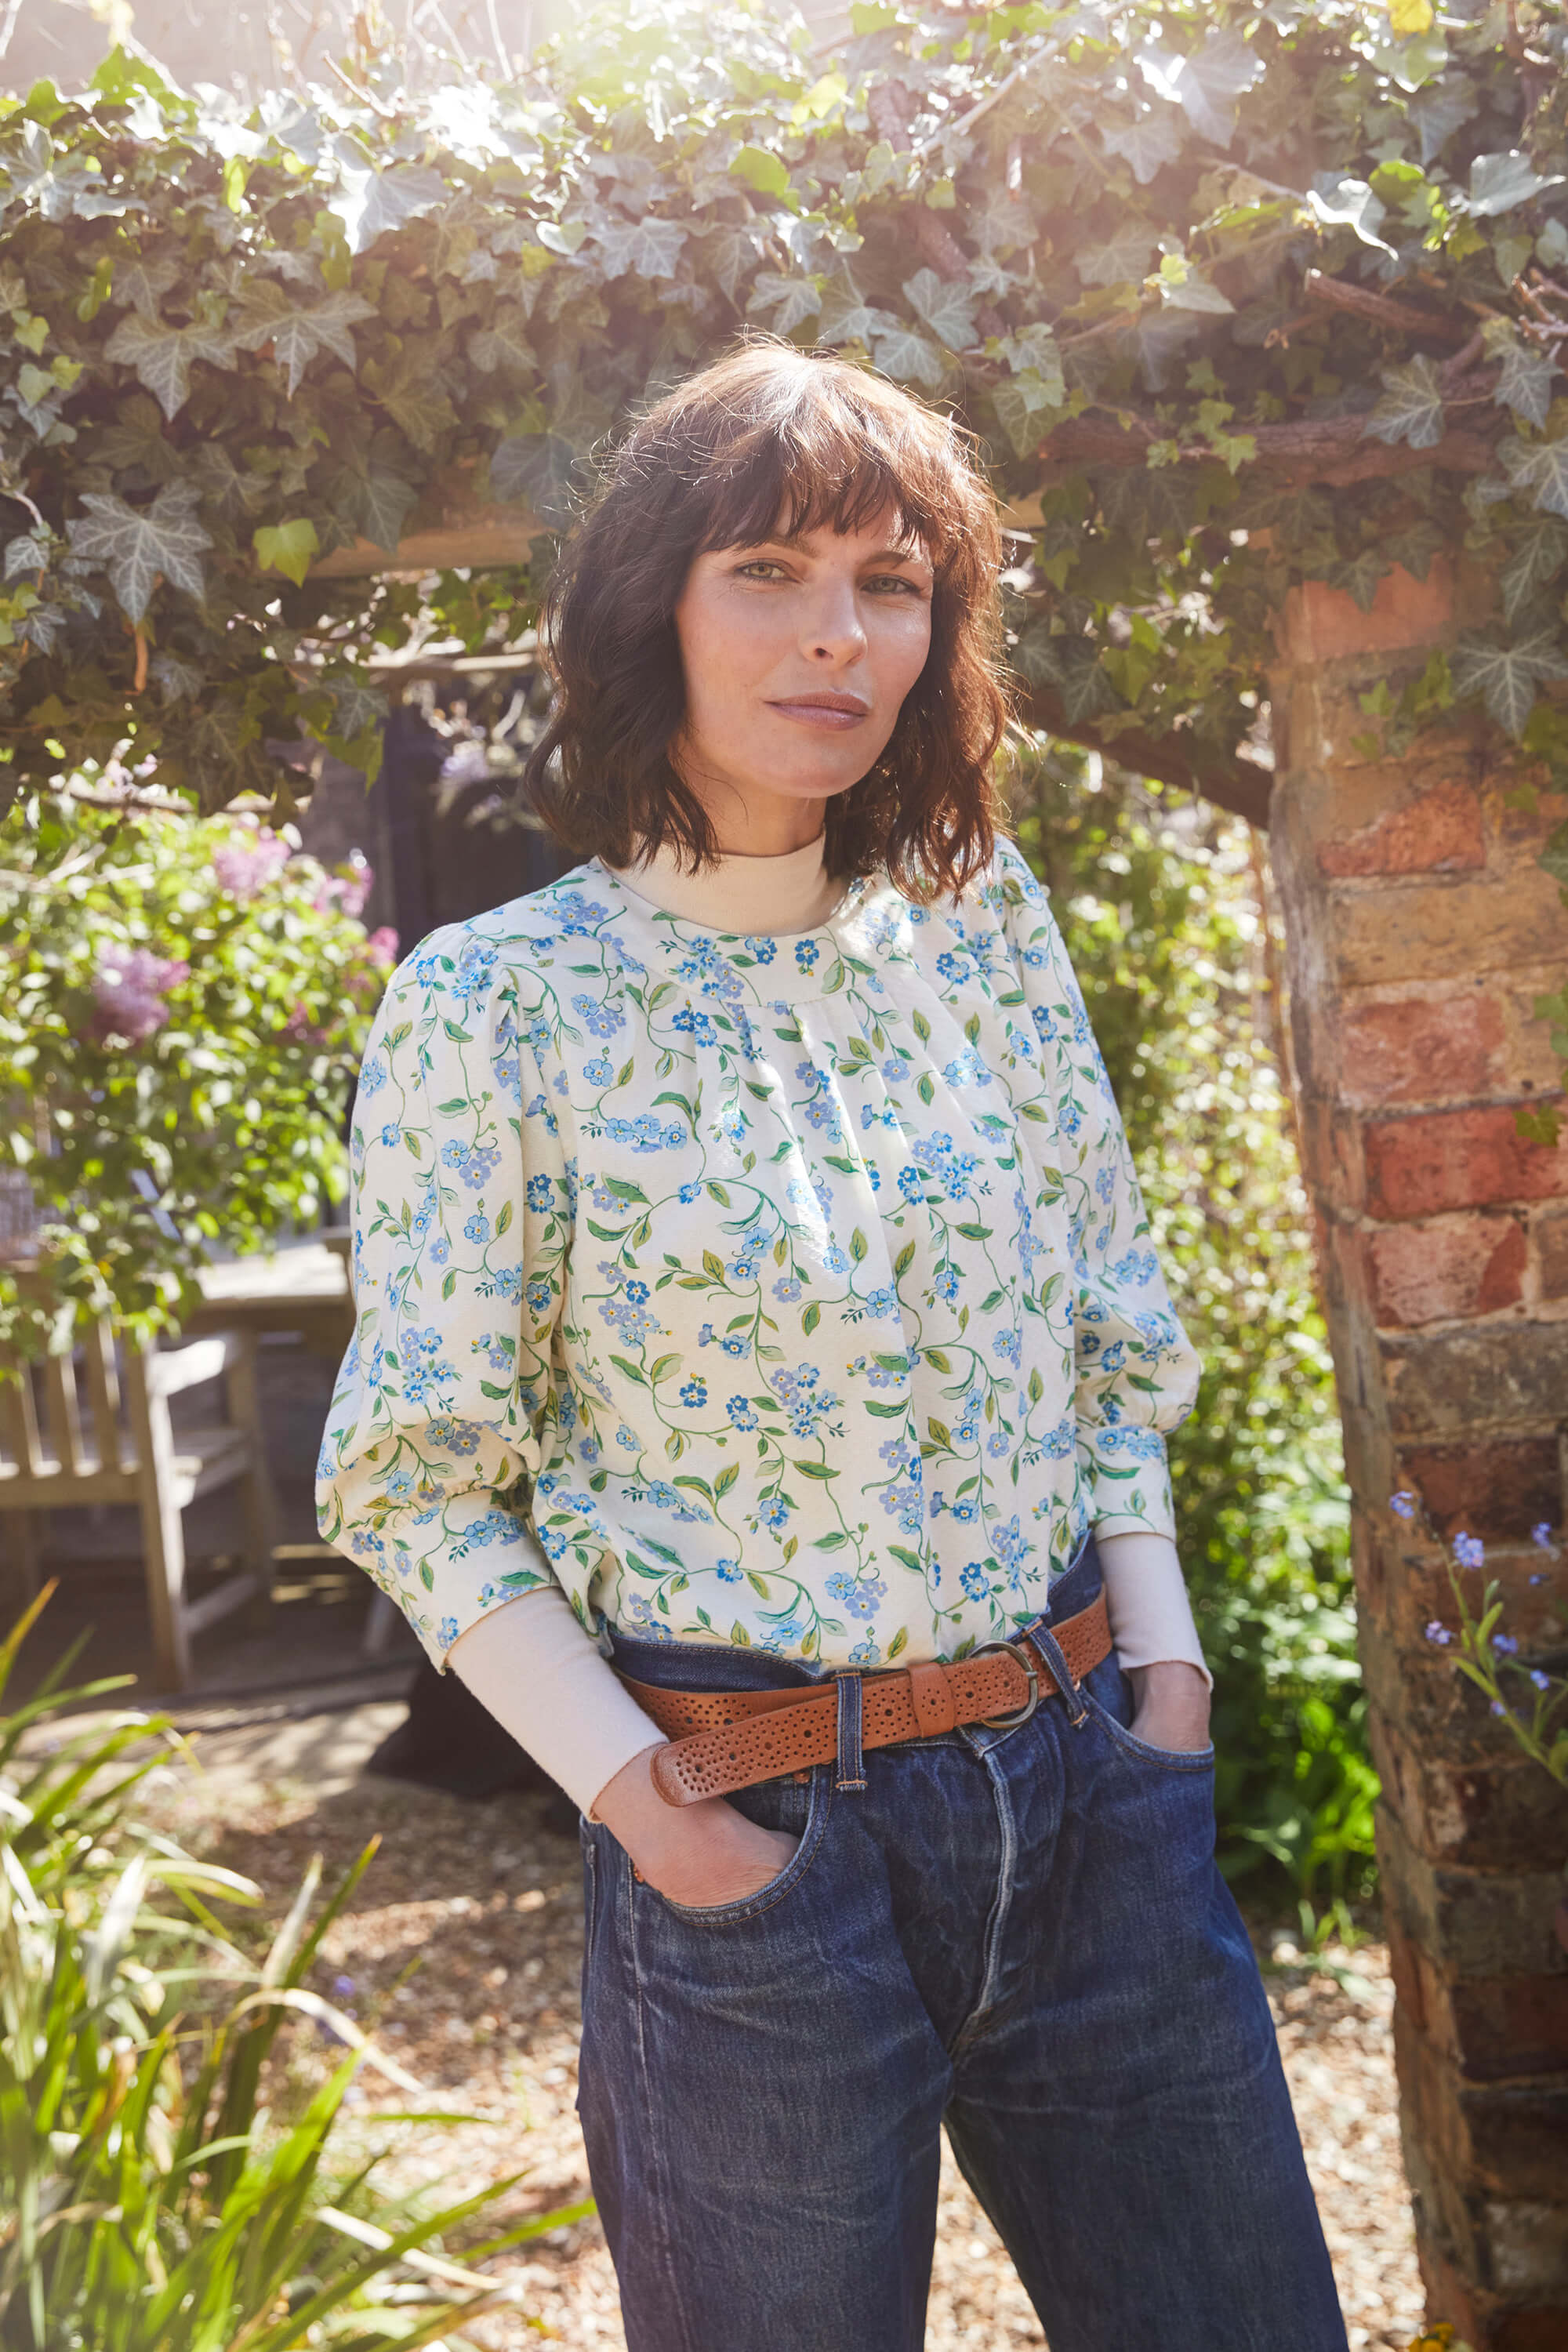 Cath Kidston Forget Me Not Pretty Printed Blouse in Cream, 10